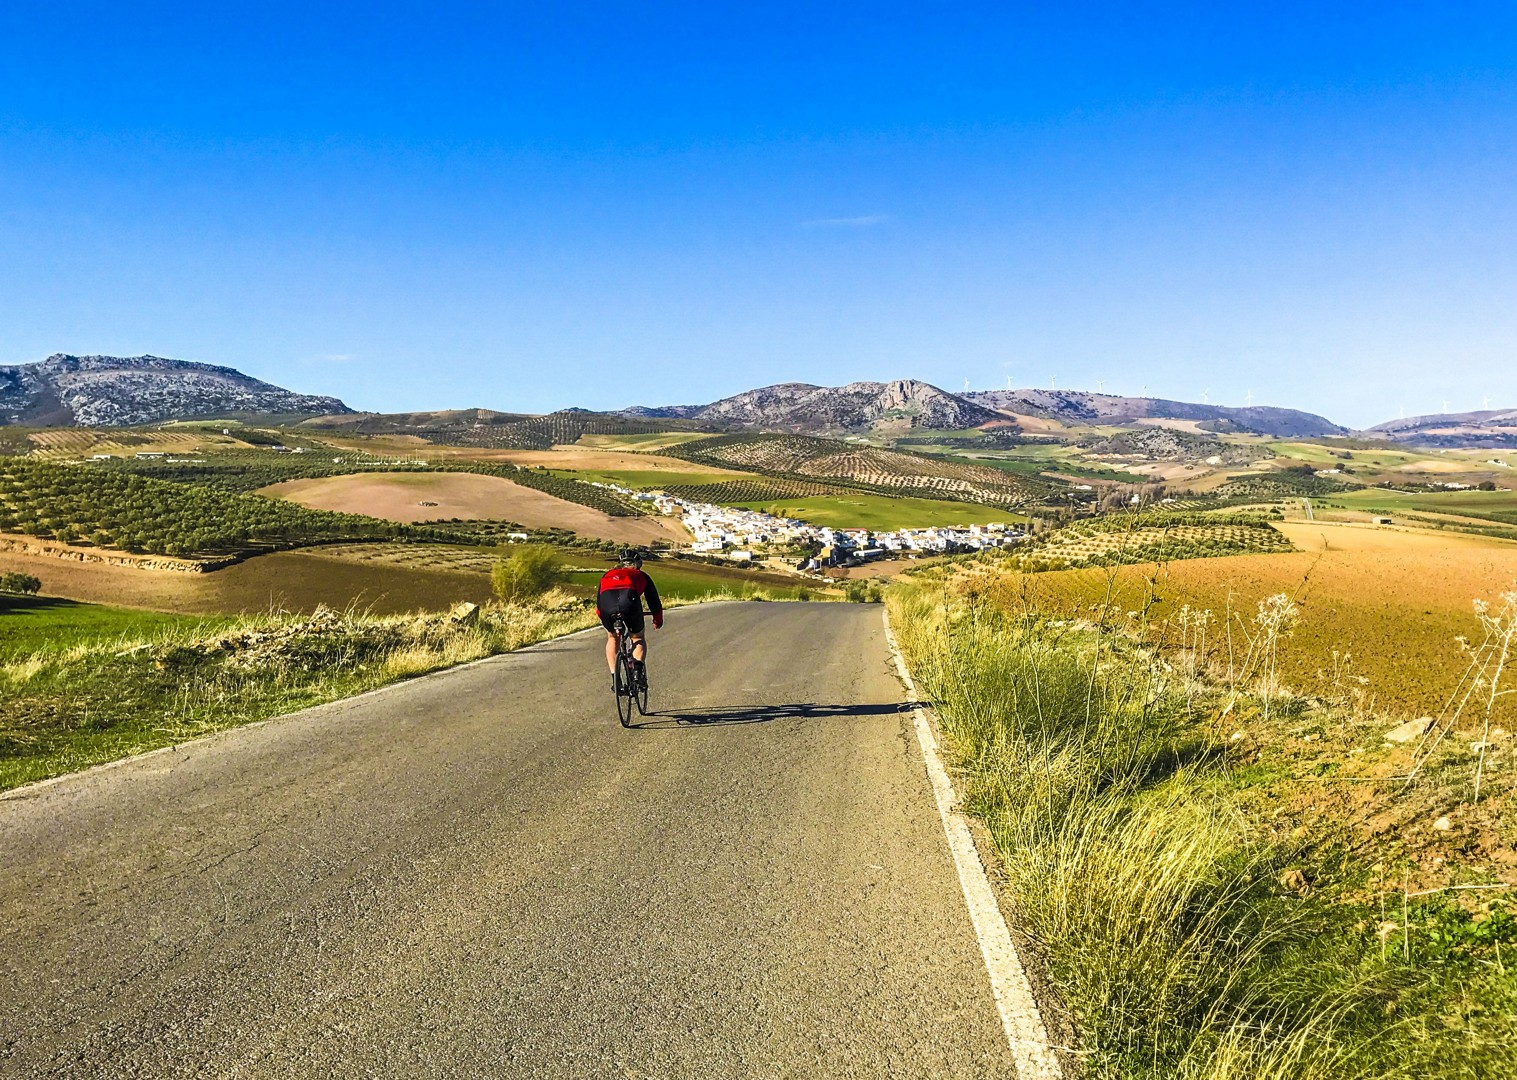 smooth-roads-cycling-vacation-southern-spain.jpg - Southern Spain - Andalucia - Los Pueblos Blancos - Road Cycling